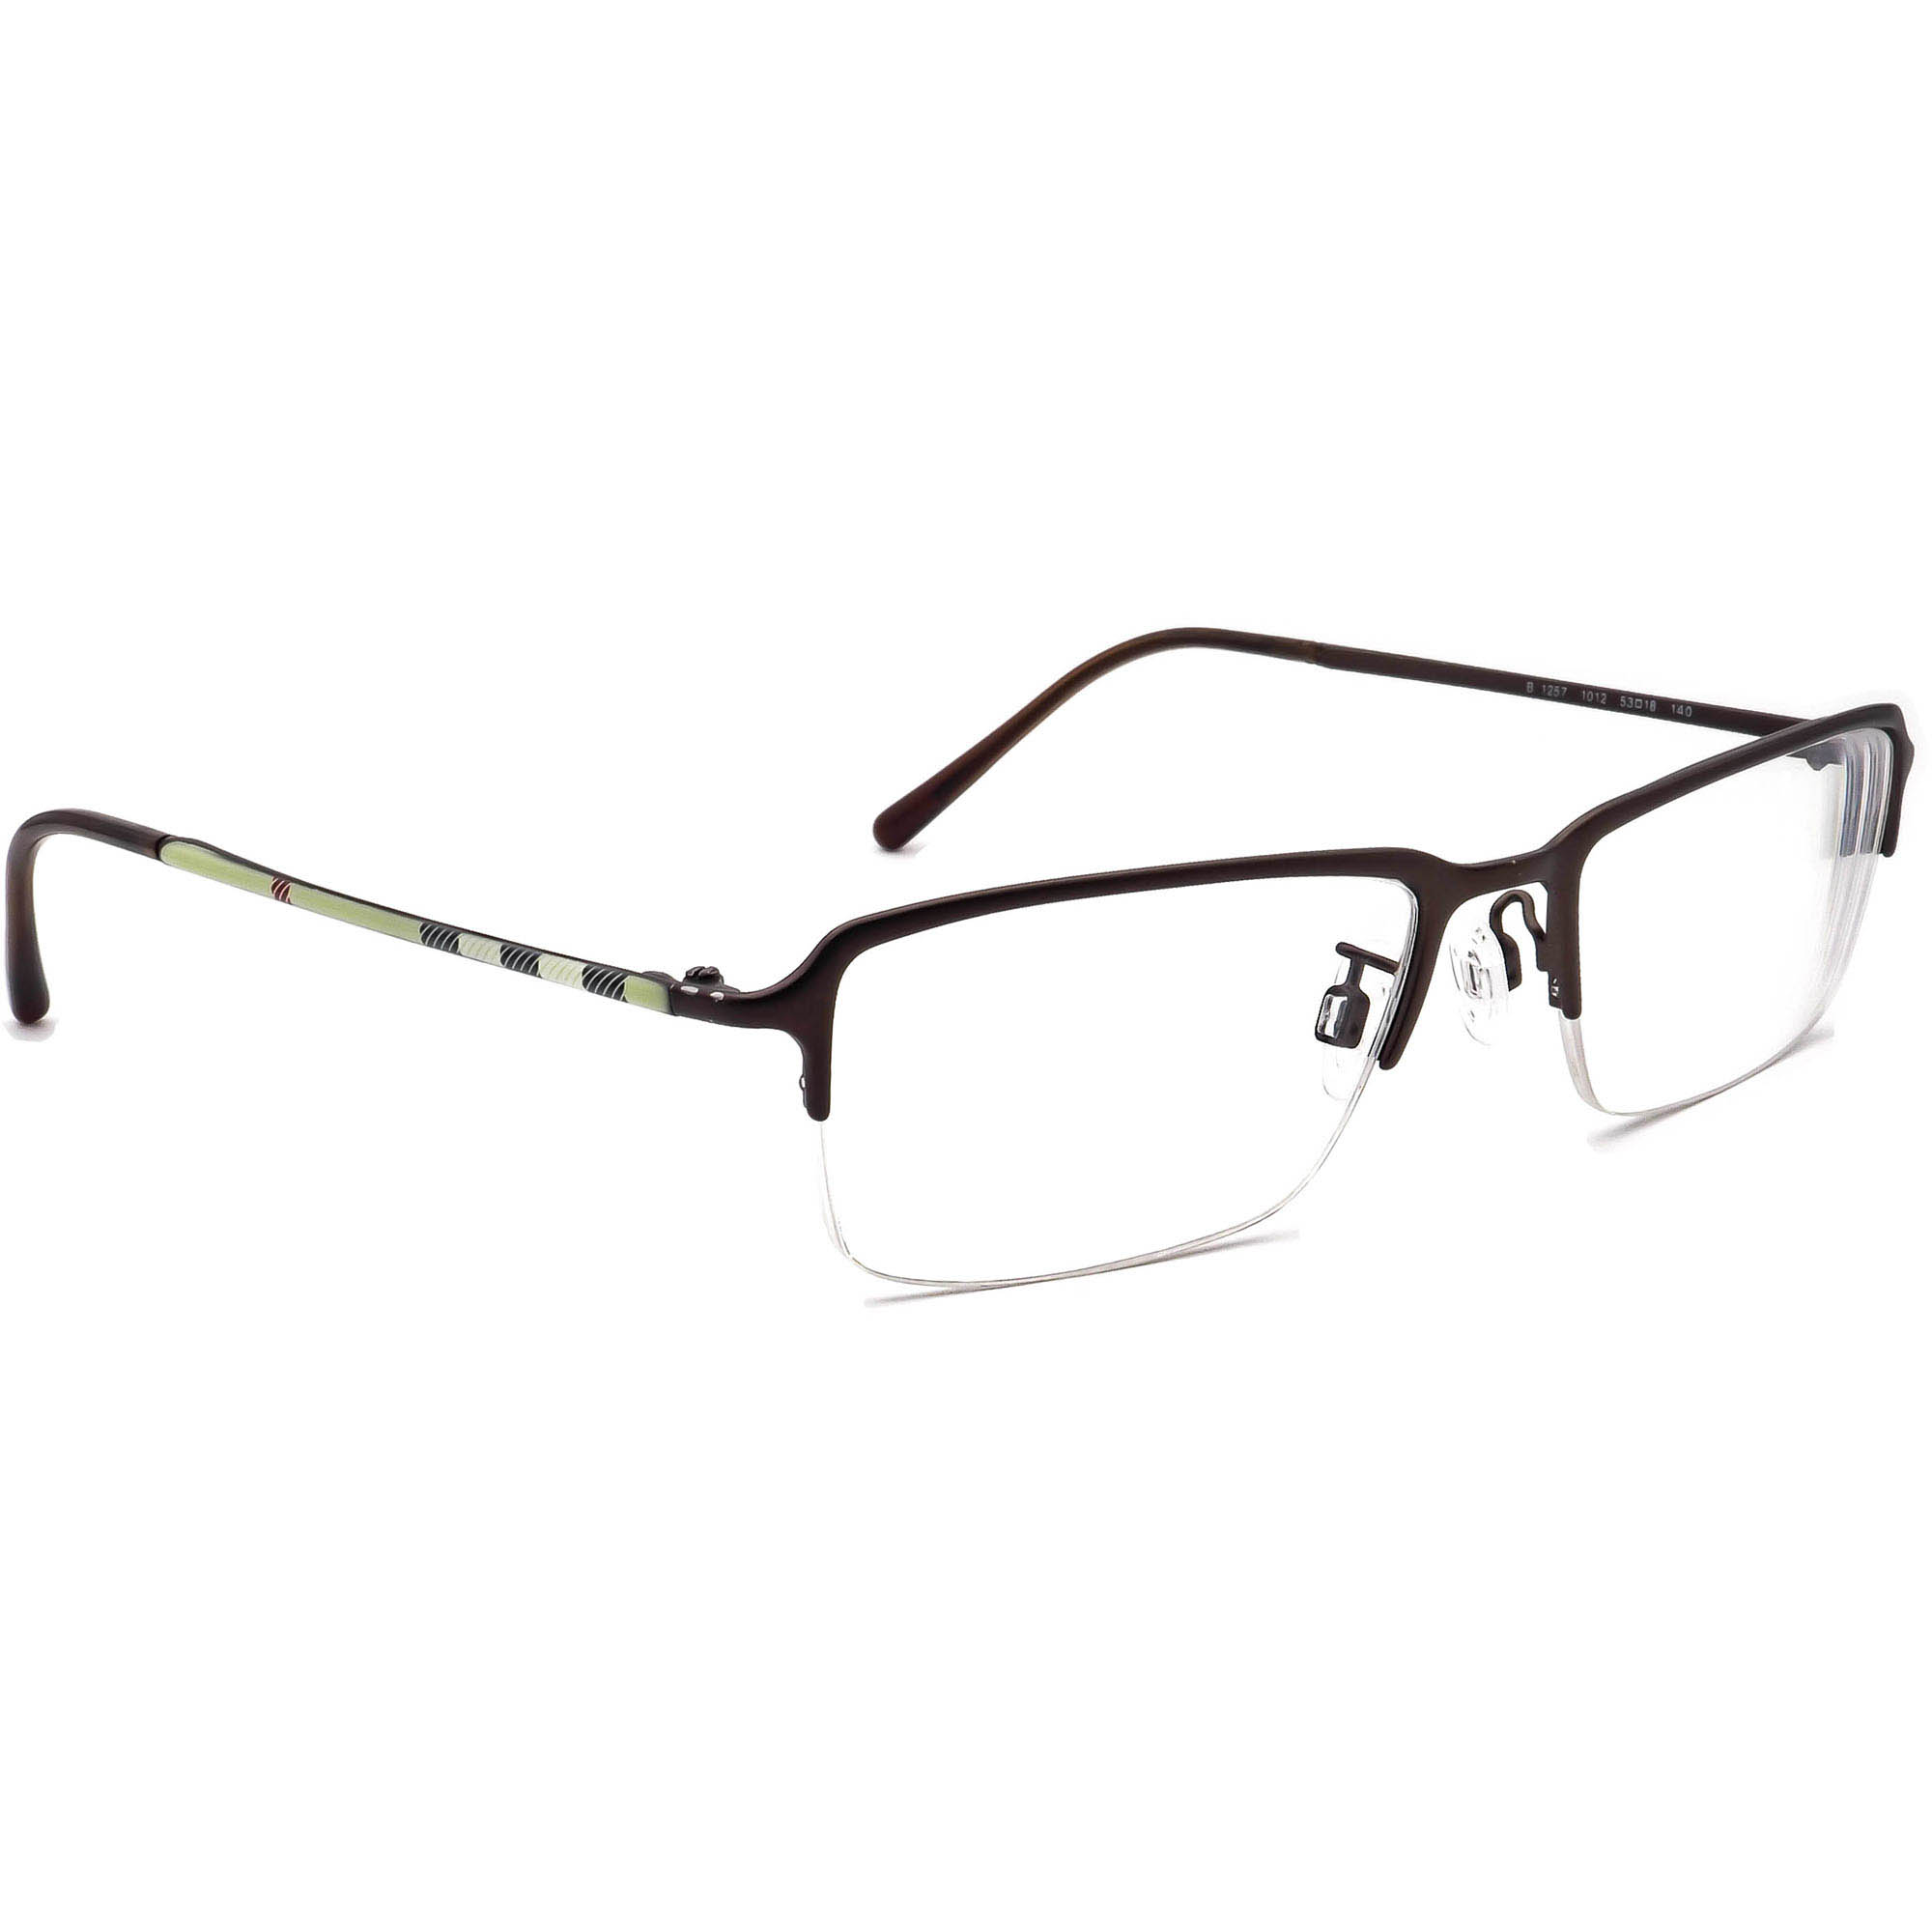 Burberry B 1257 1012 Eyeglasses